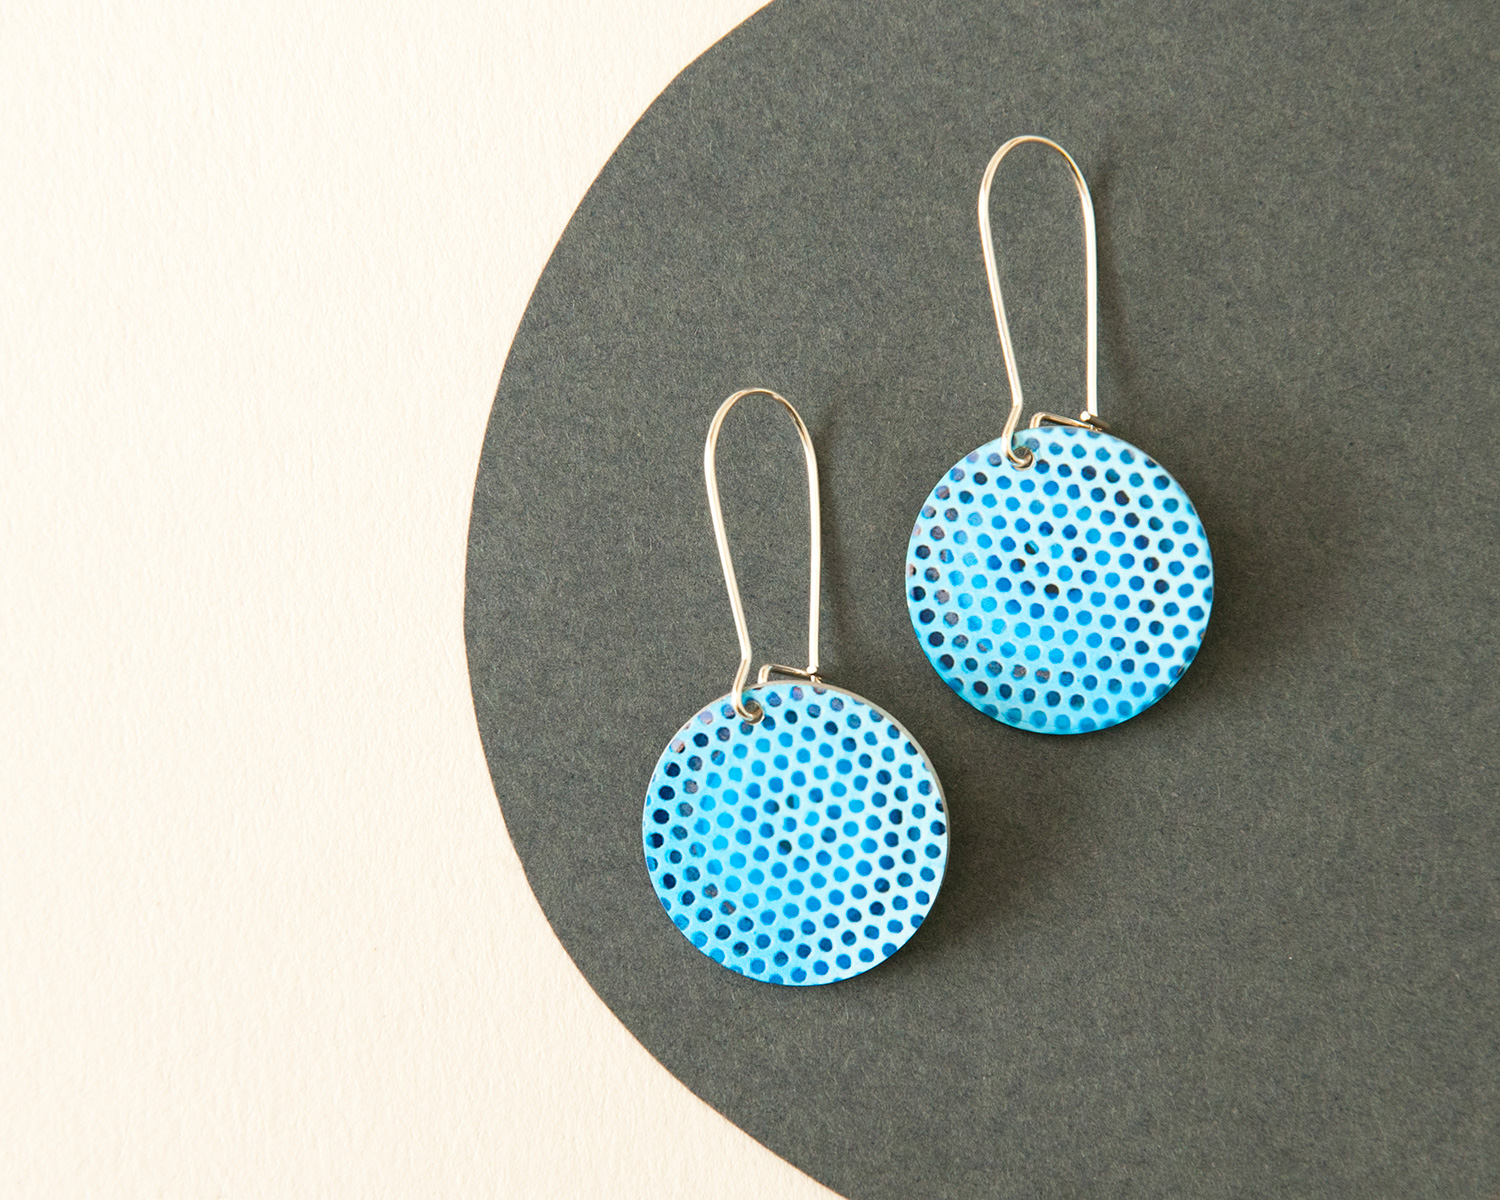 Light blue double sided earrings